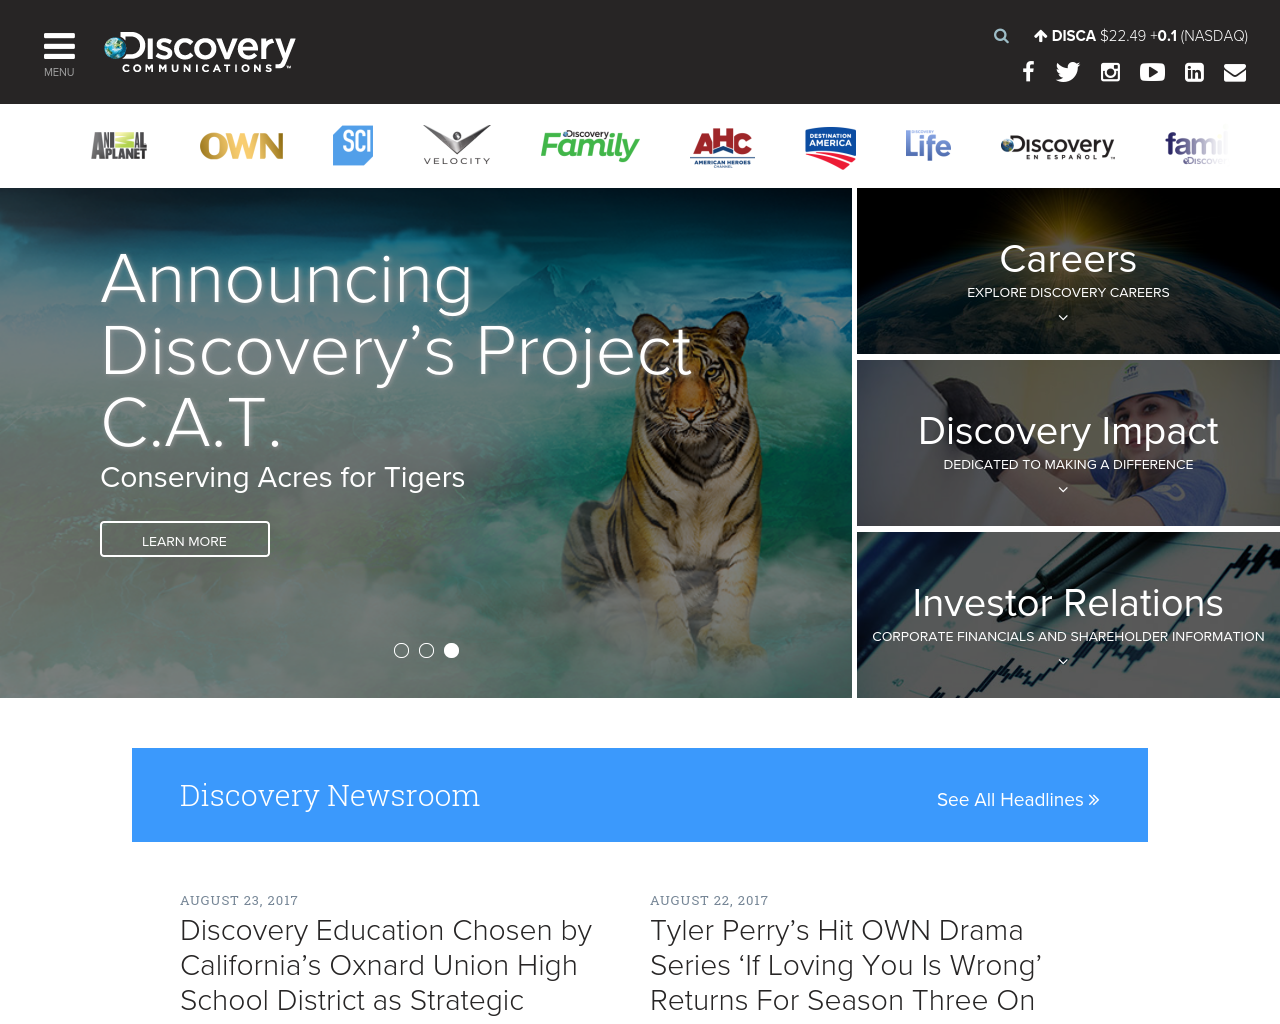 Discovery-Communications-Advertising-Reviews-Pricing